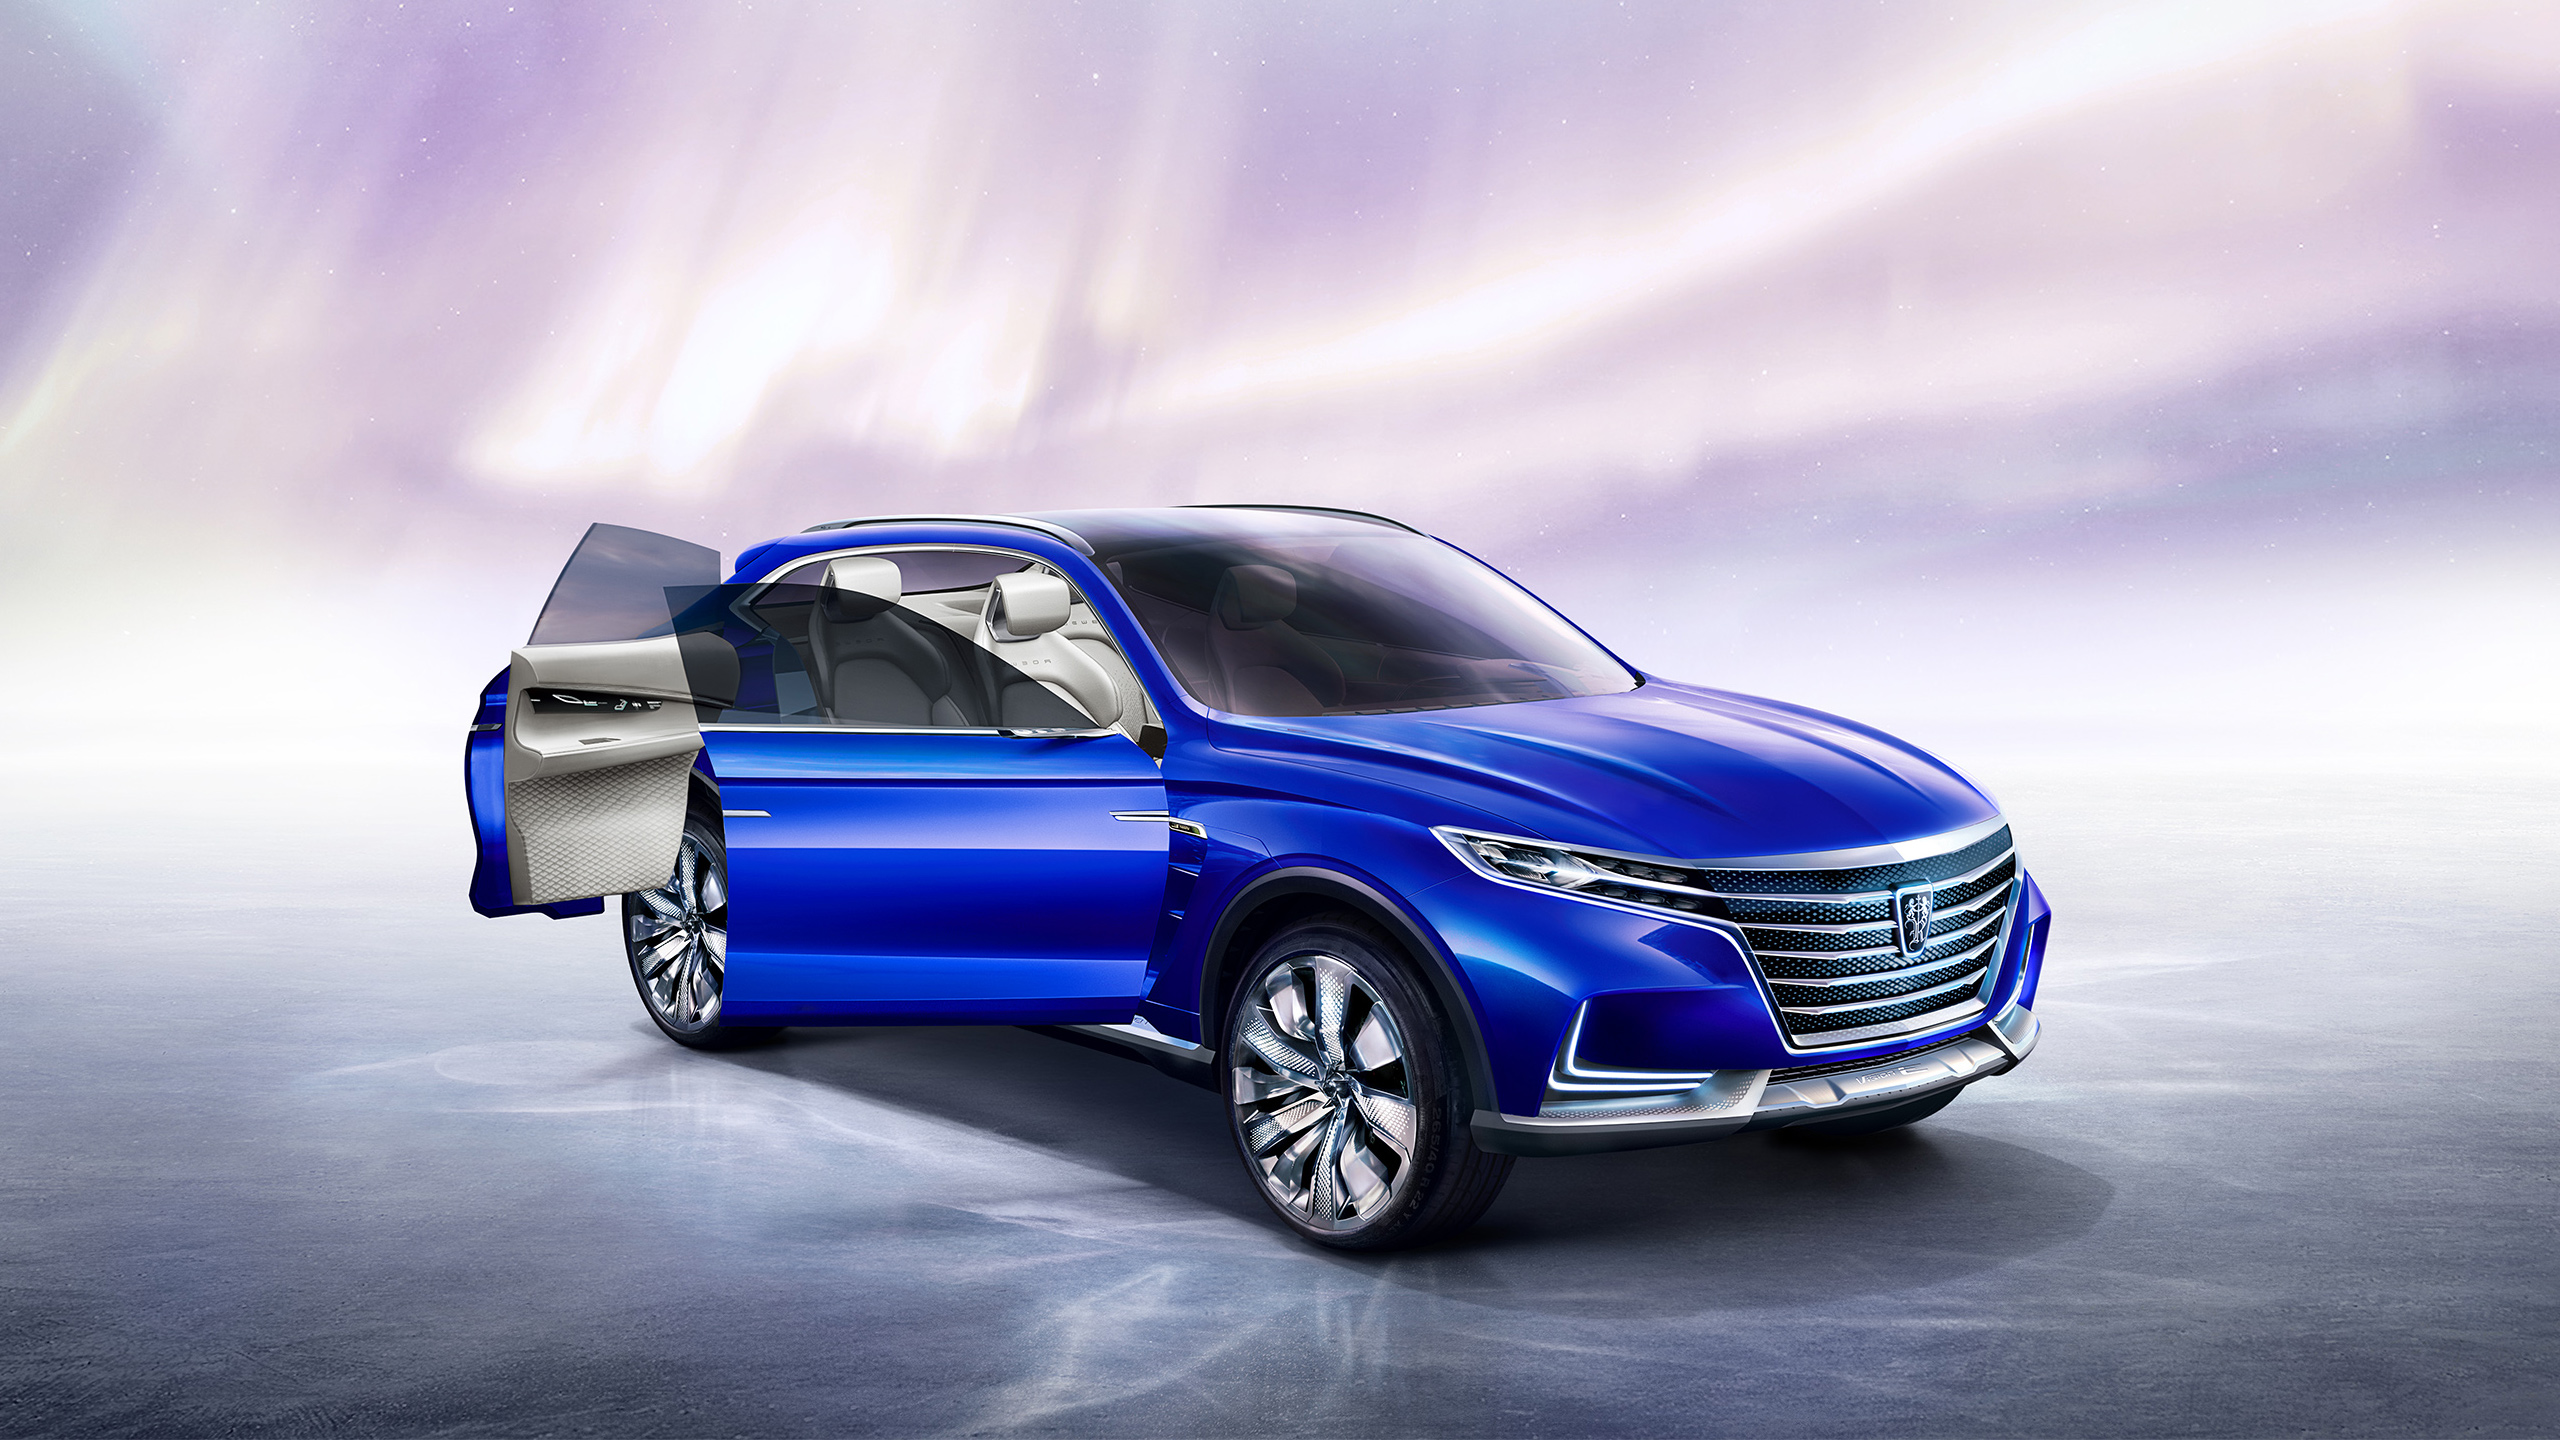 Roewe Vision E Concept Electric SUV Wallpaper